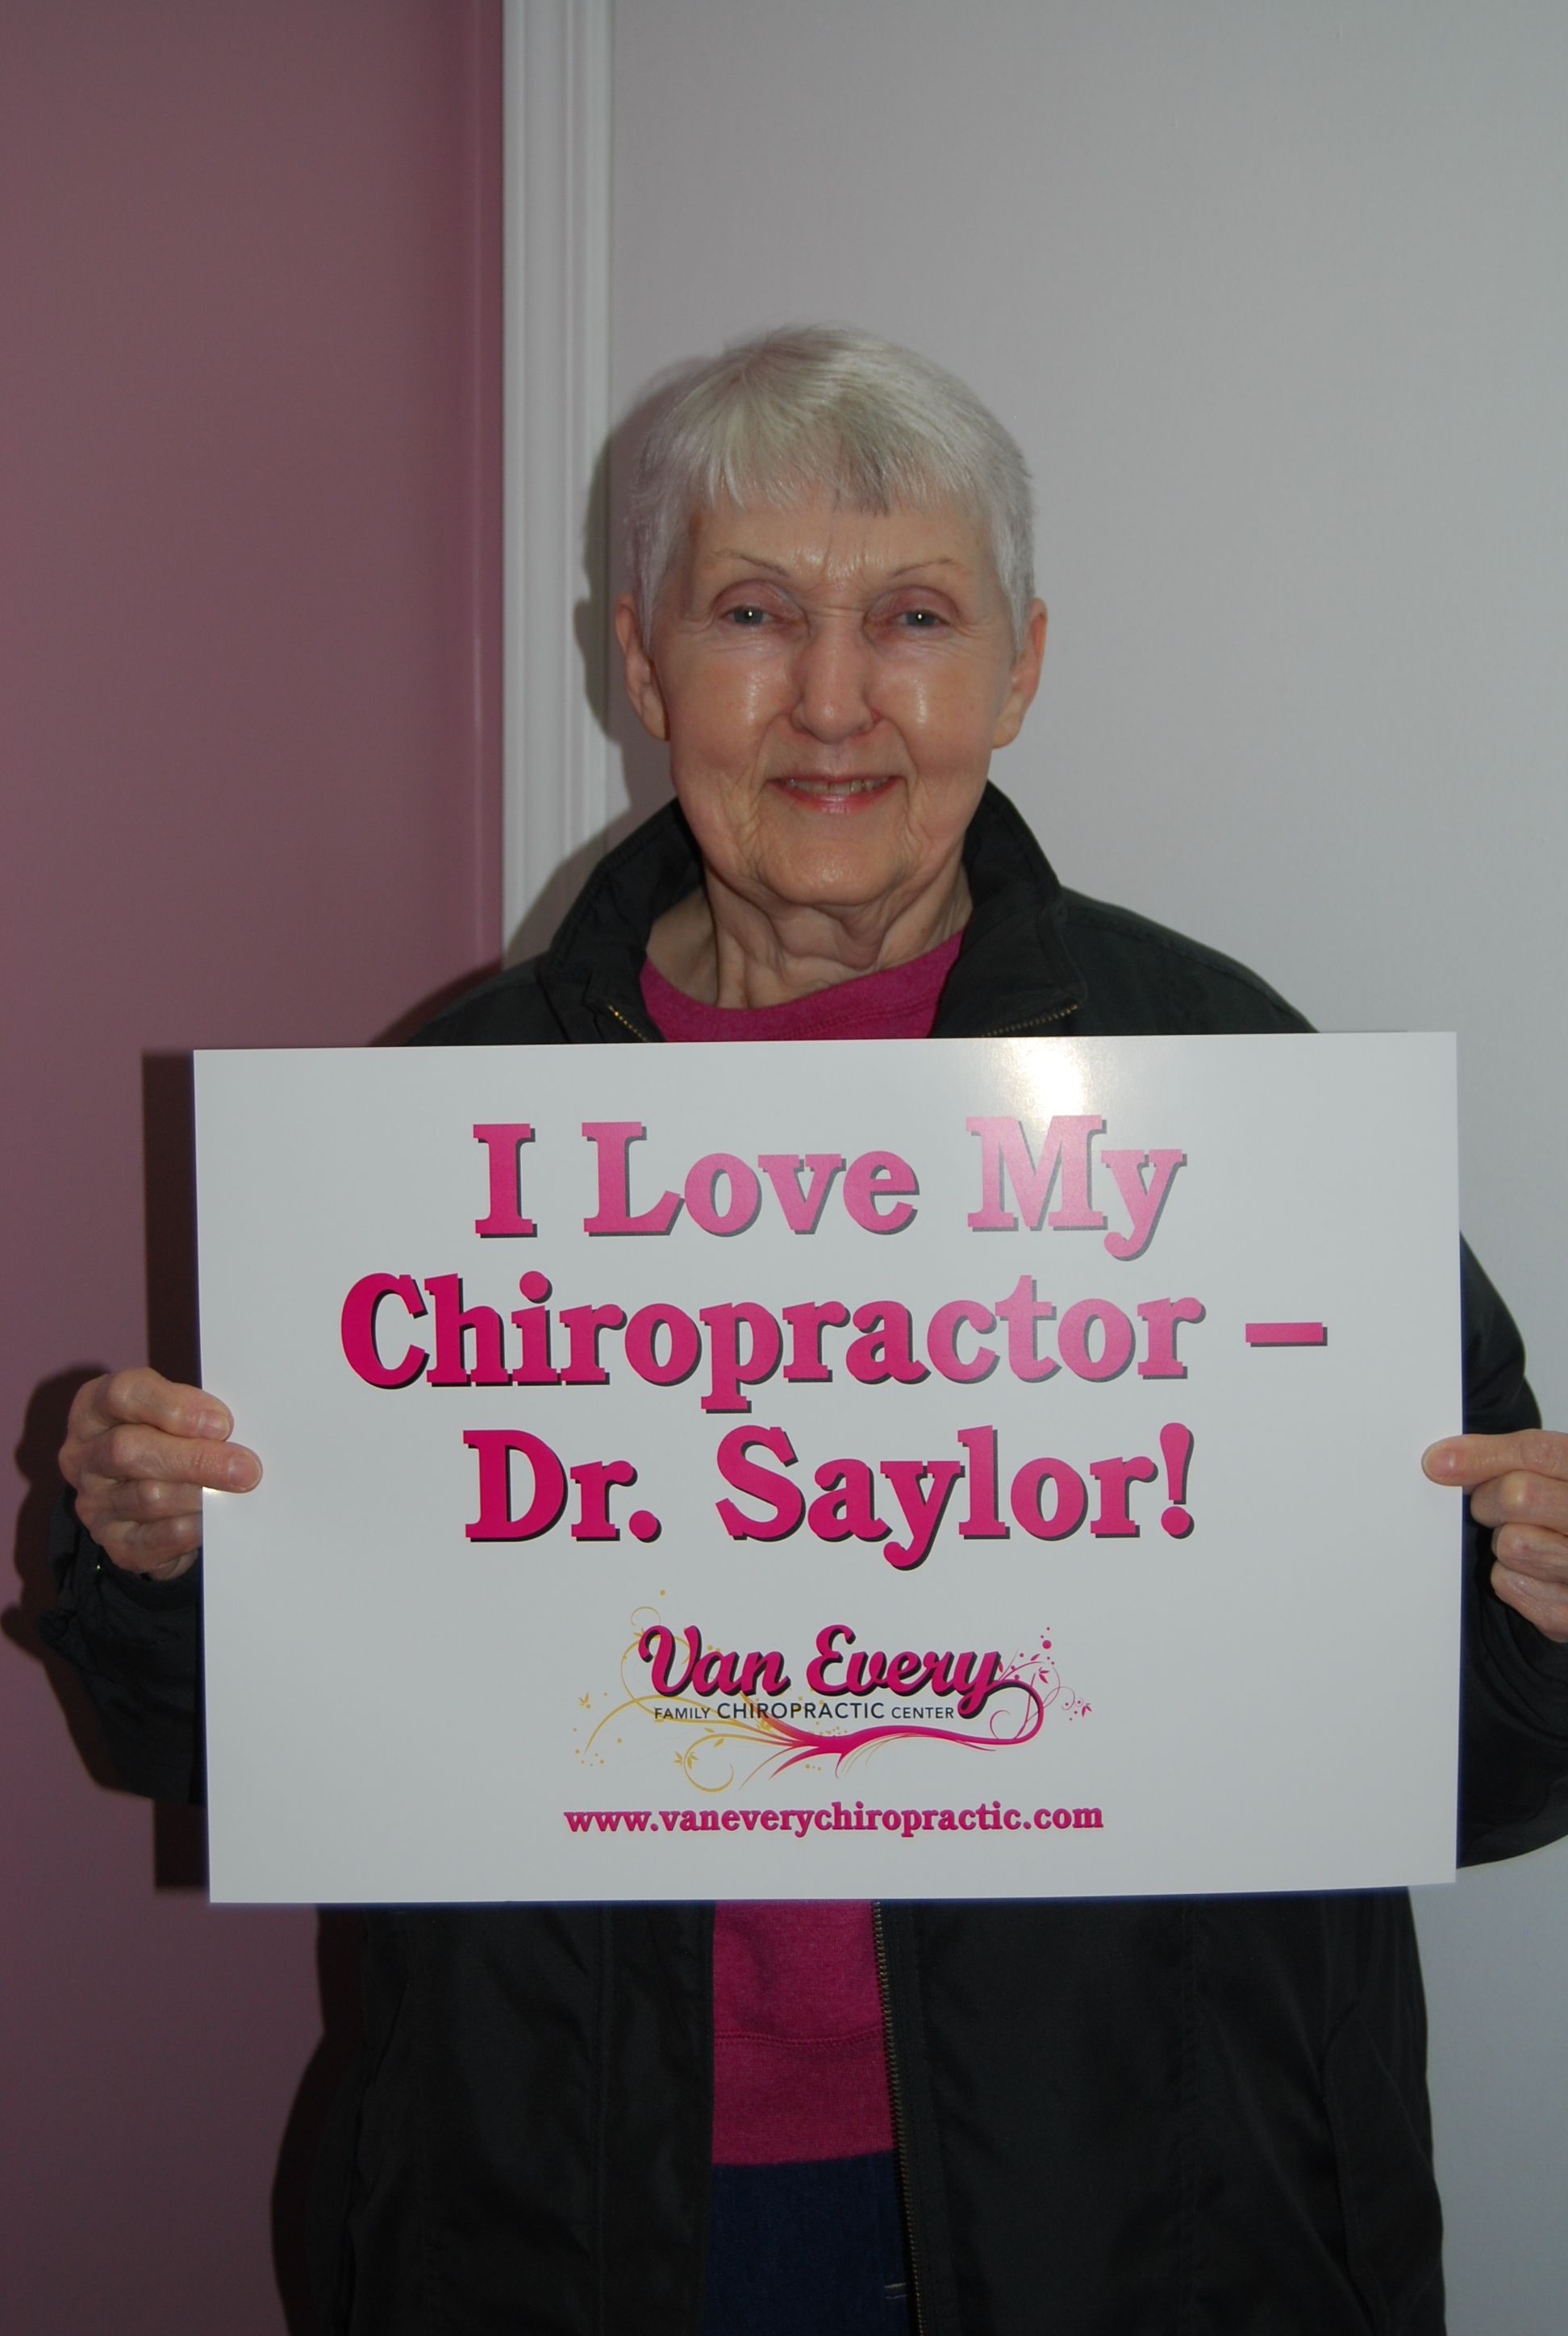 Pin by Dr. Anna Saylor, Van Every Chi on I love my